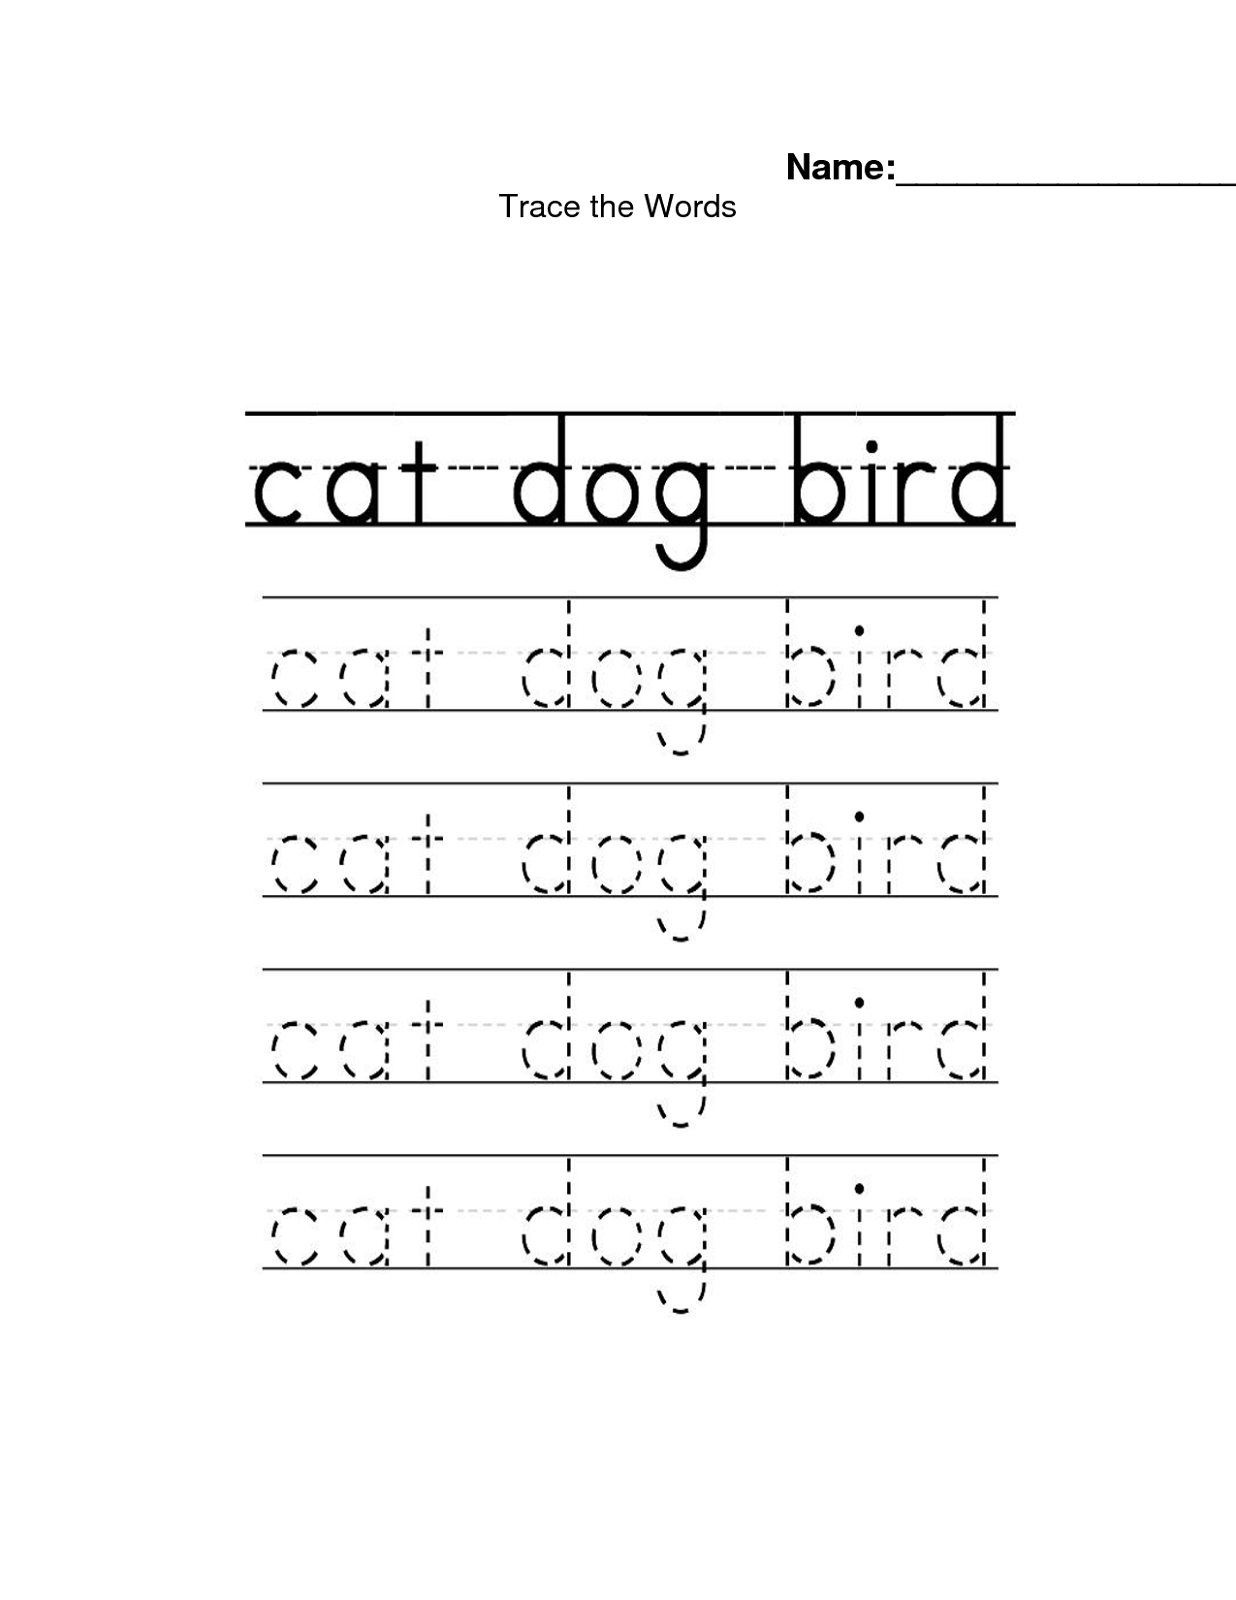 Trace The Words Worksheets In